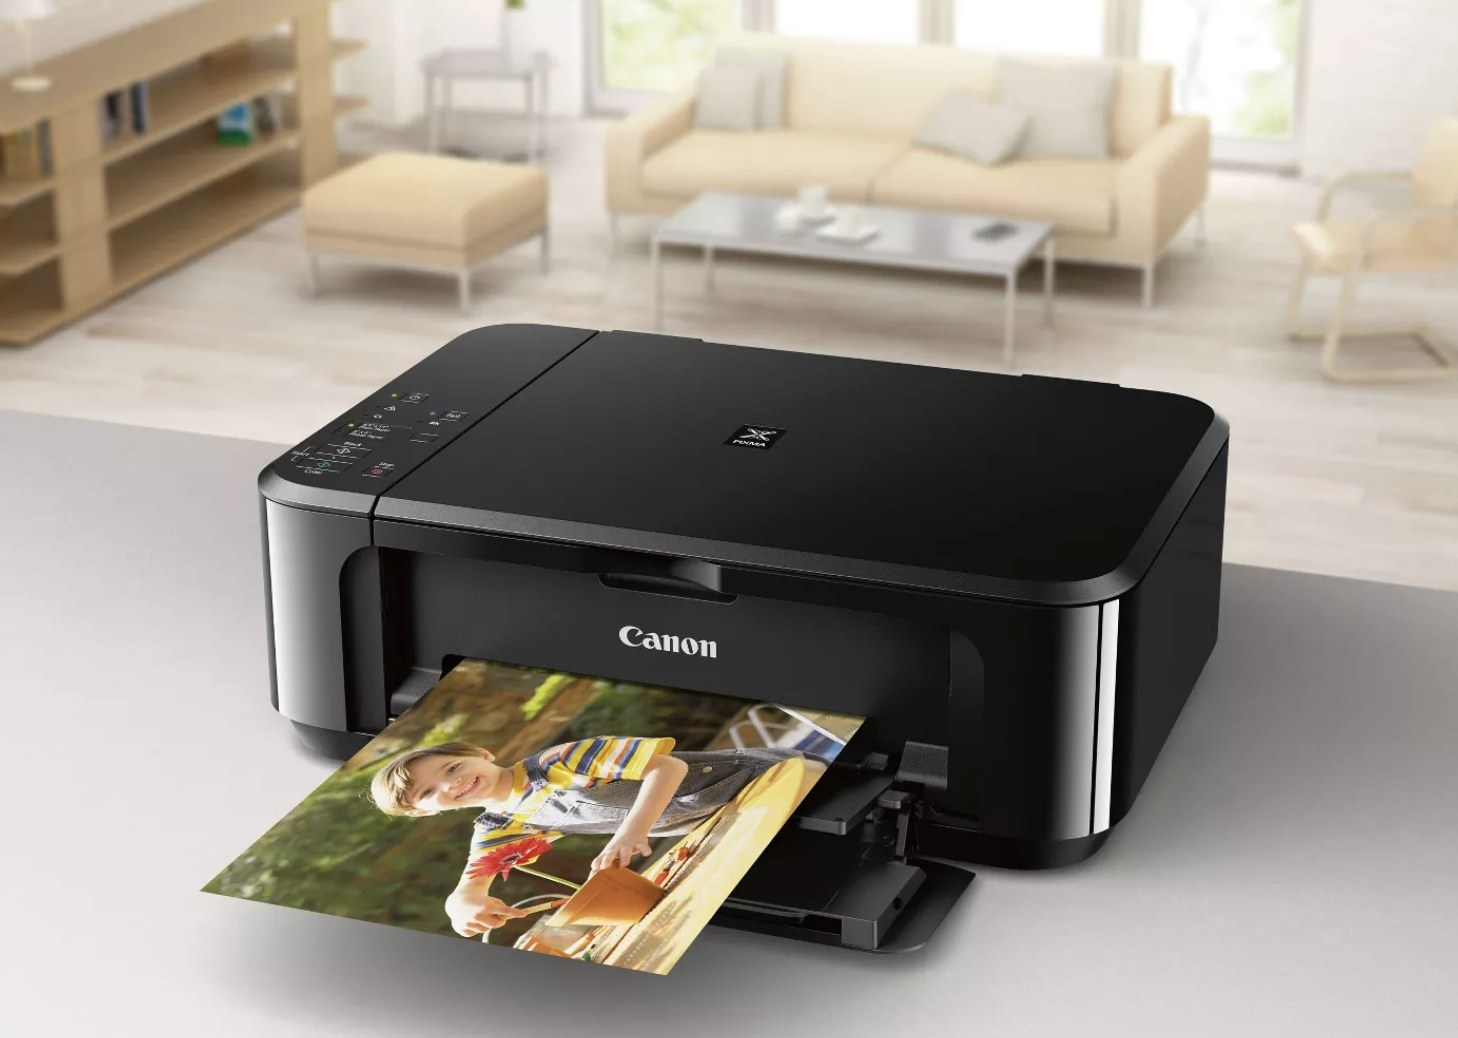 A black canon printer with a photo of a child being printed out